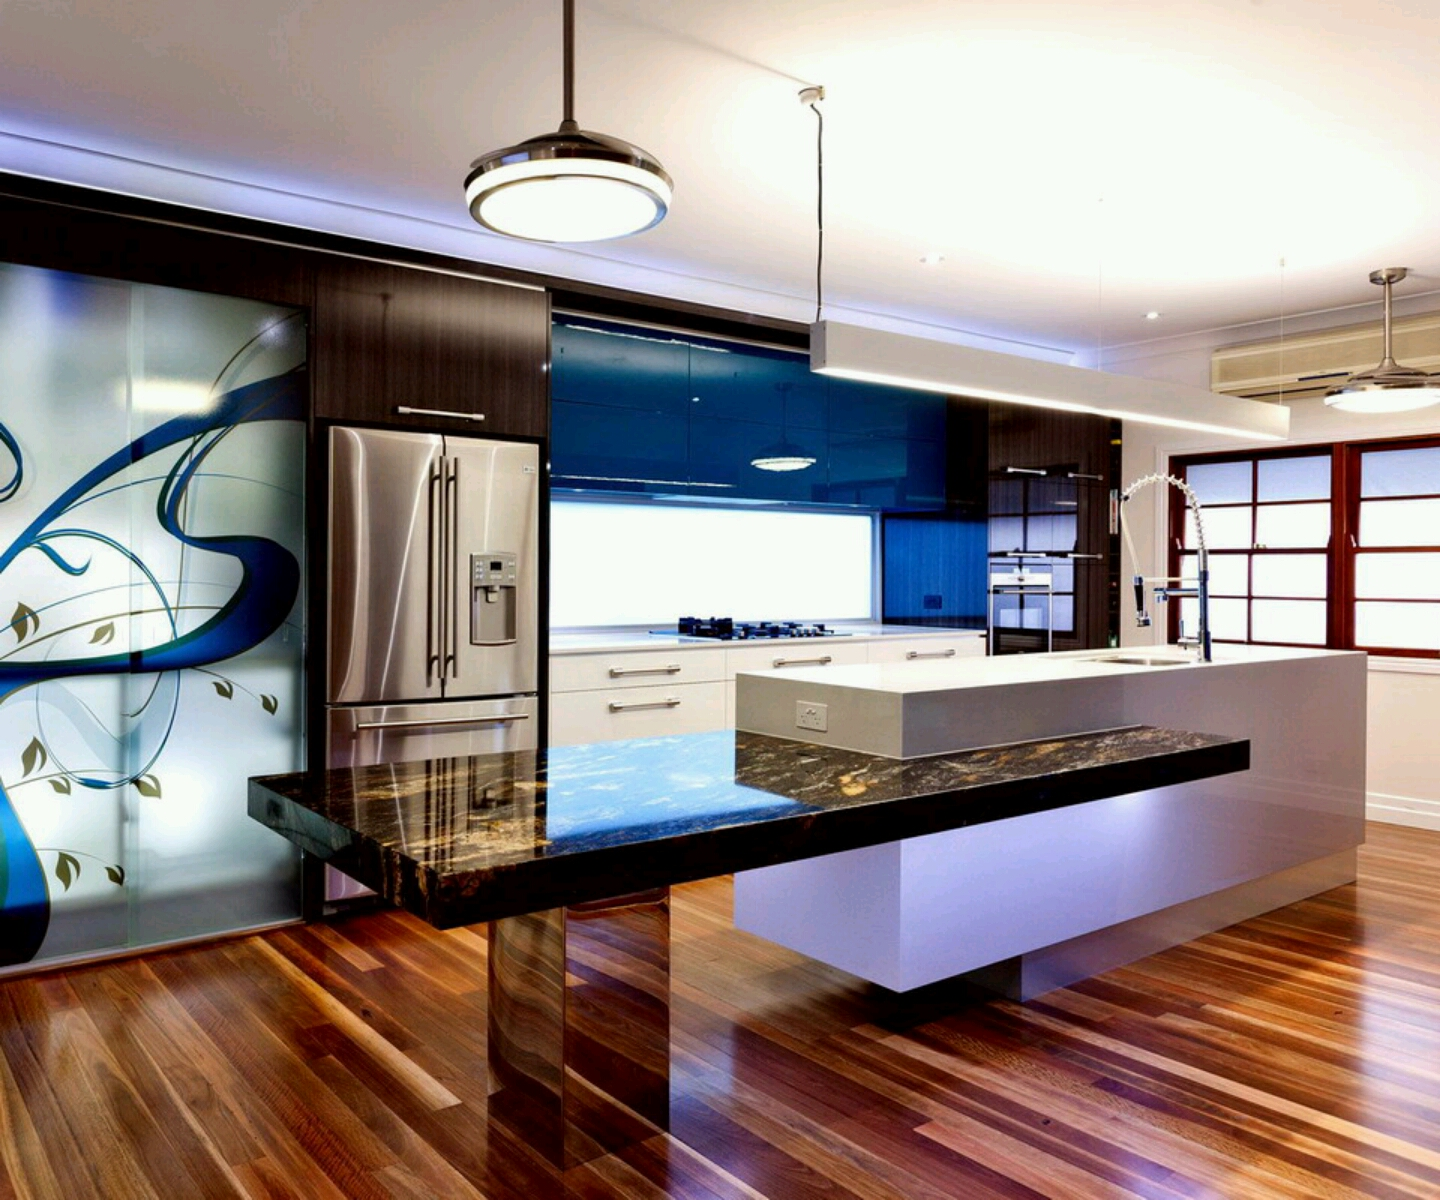 Ultra modern kitchen designs ideas new home designs Pictures of new homes interior